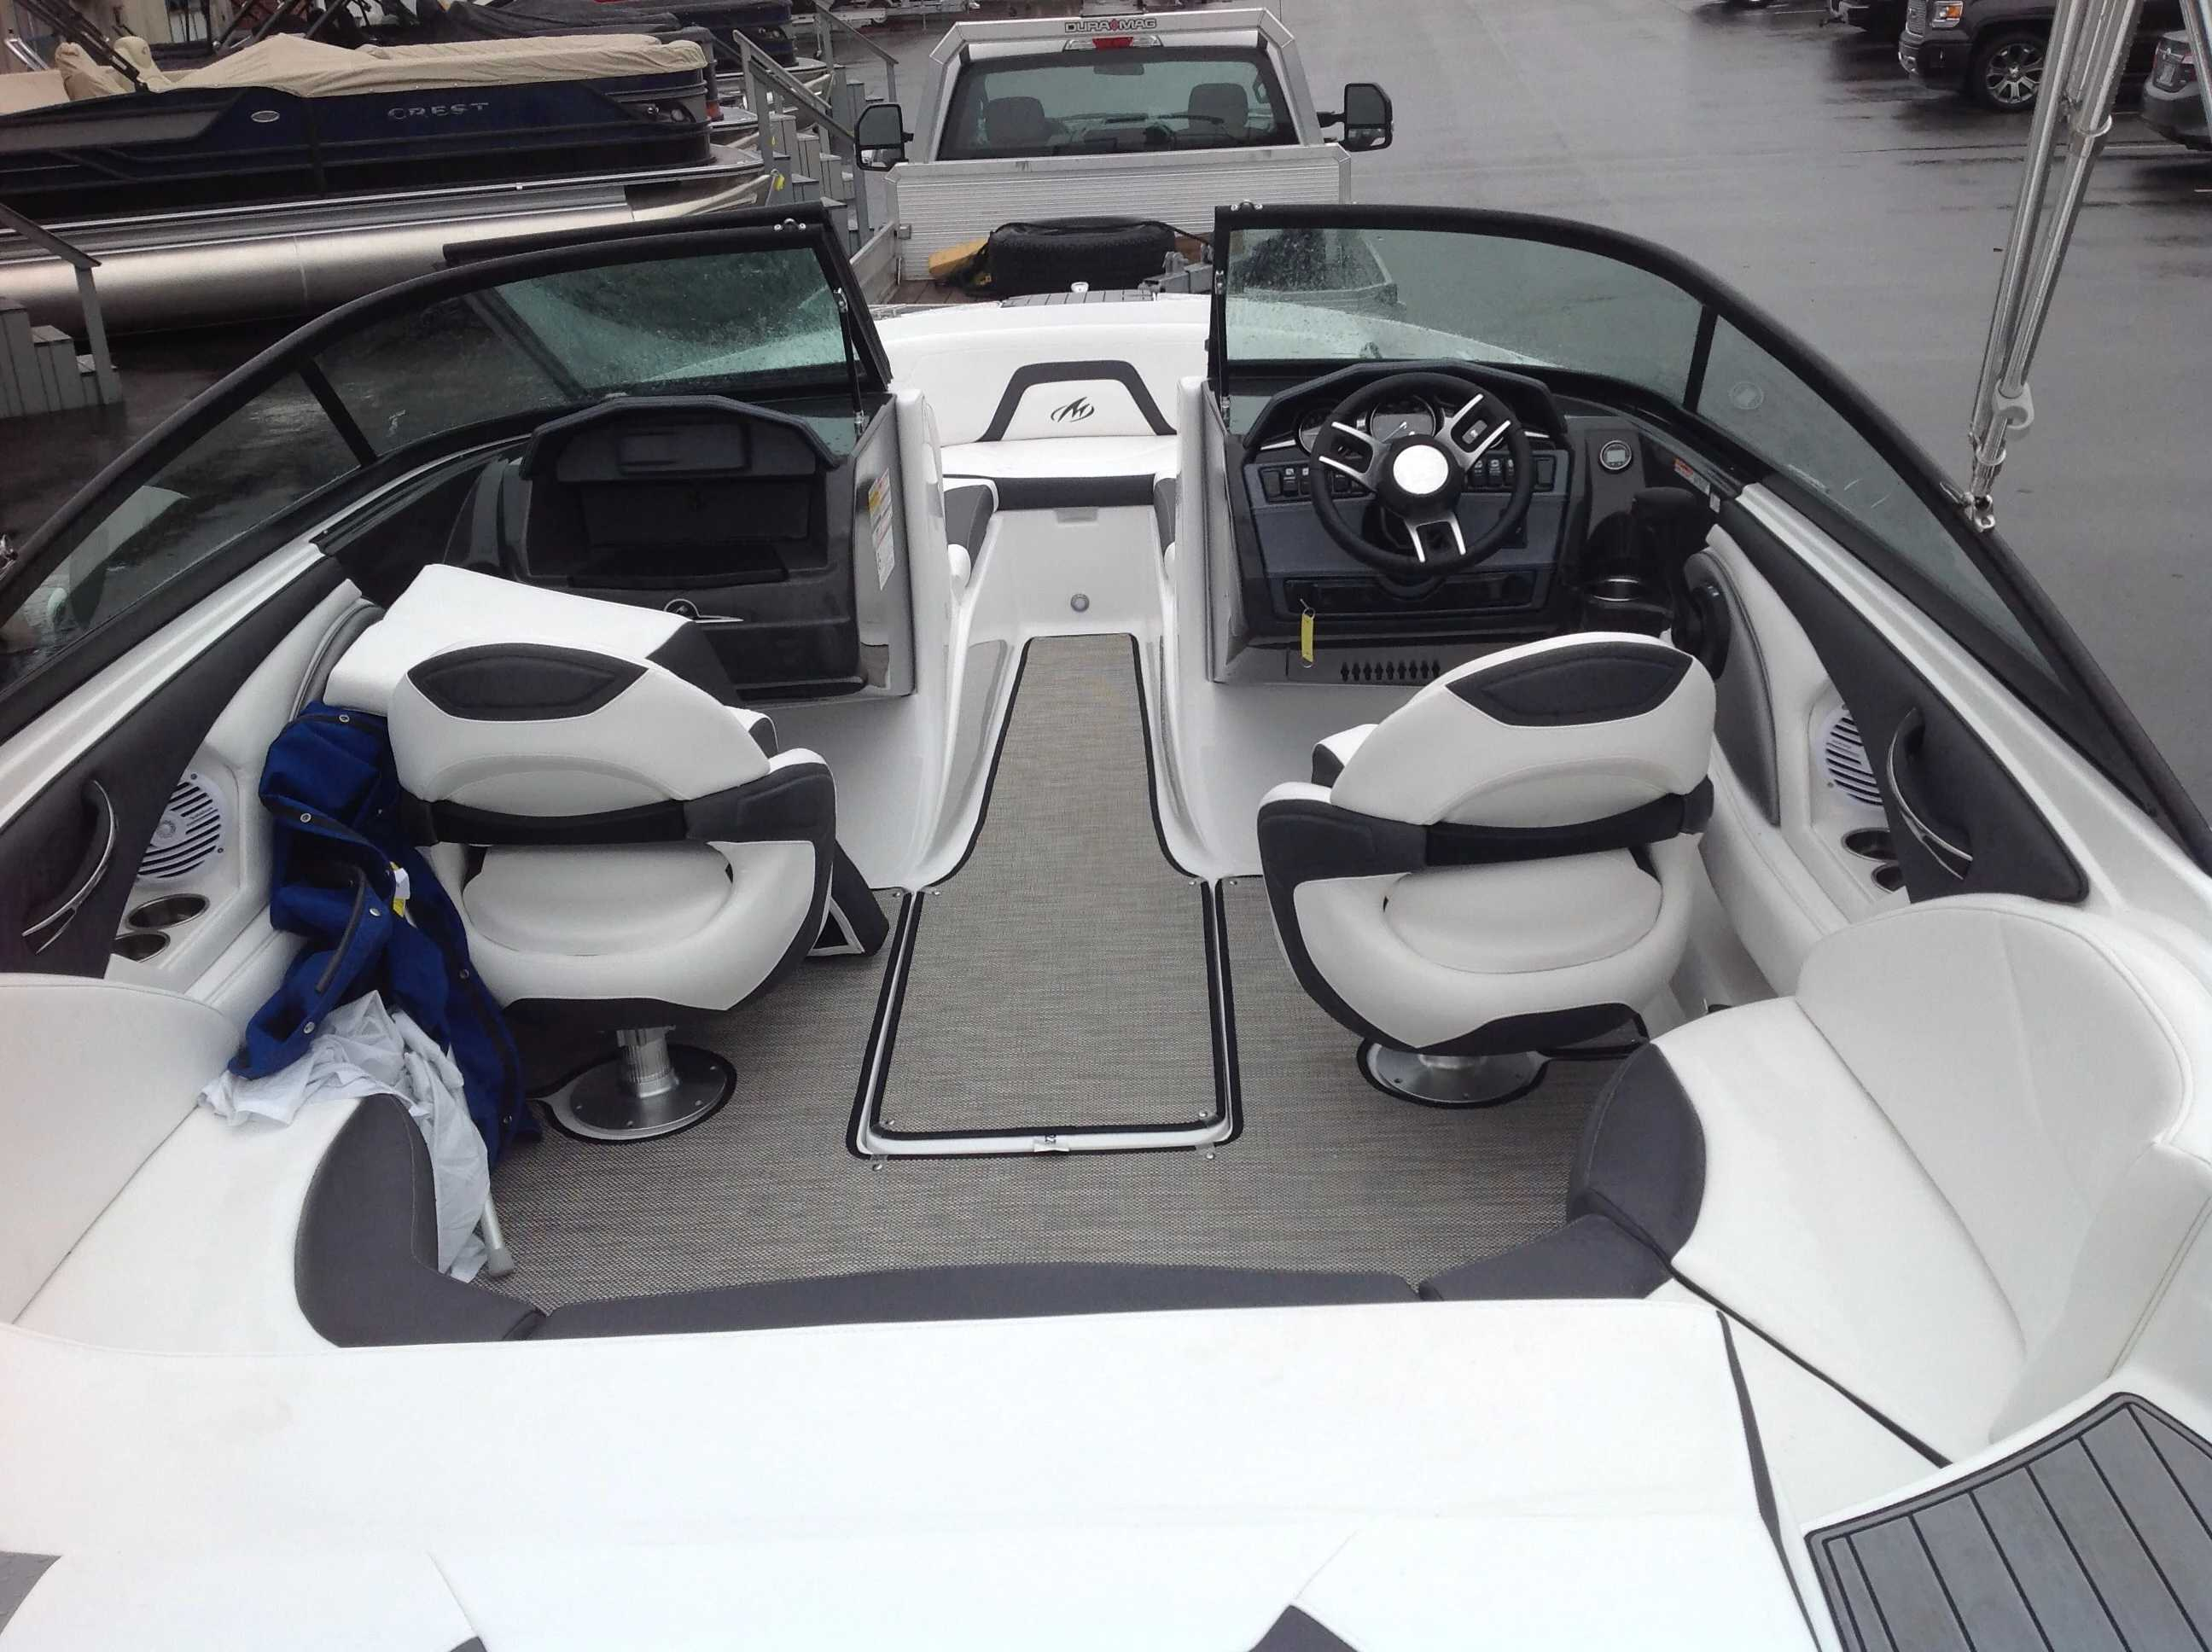 2021 Monterey boat for sale, model of the boat is 224FS & Image # 10 of 10